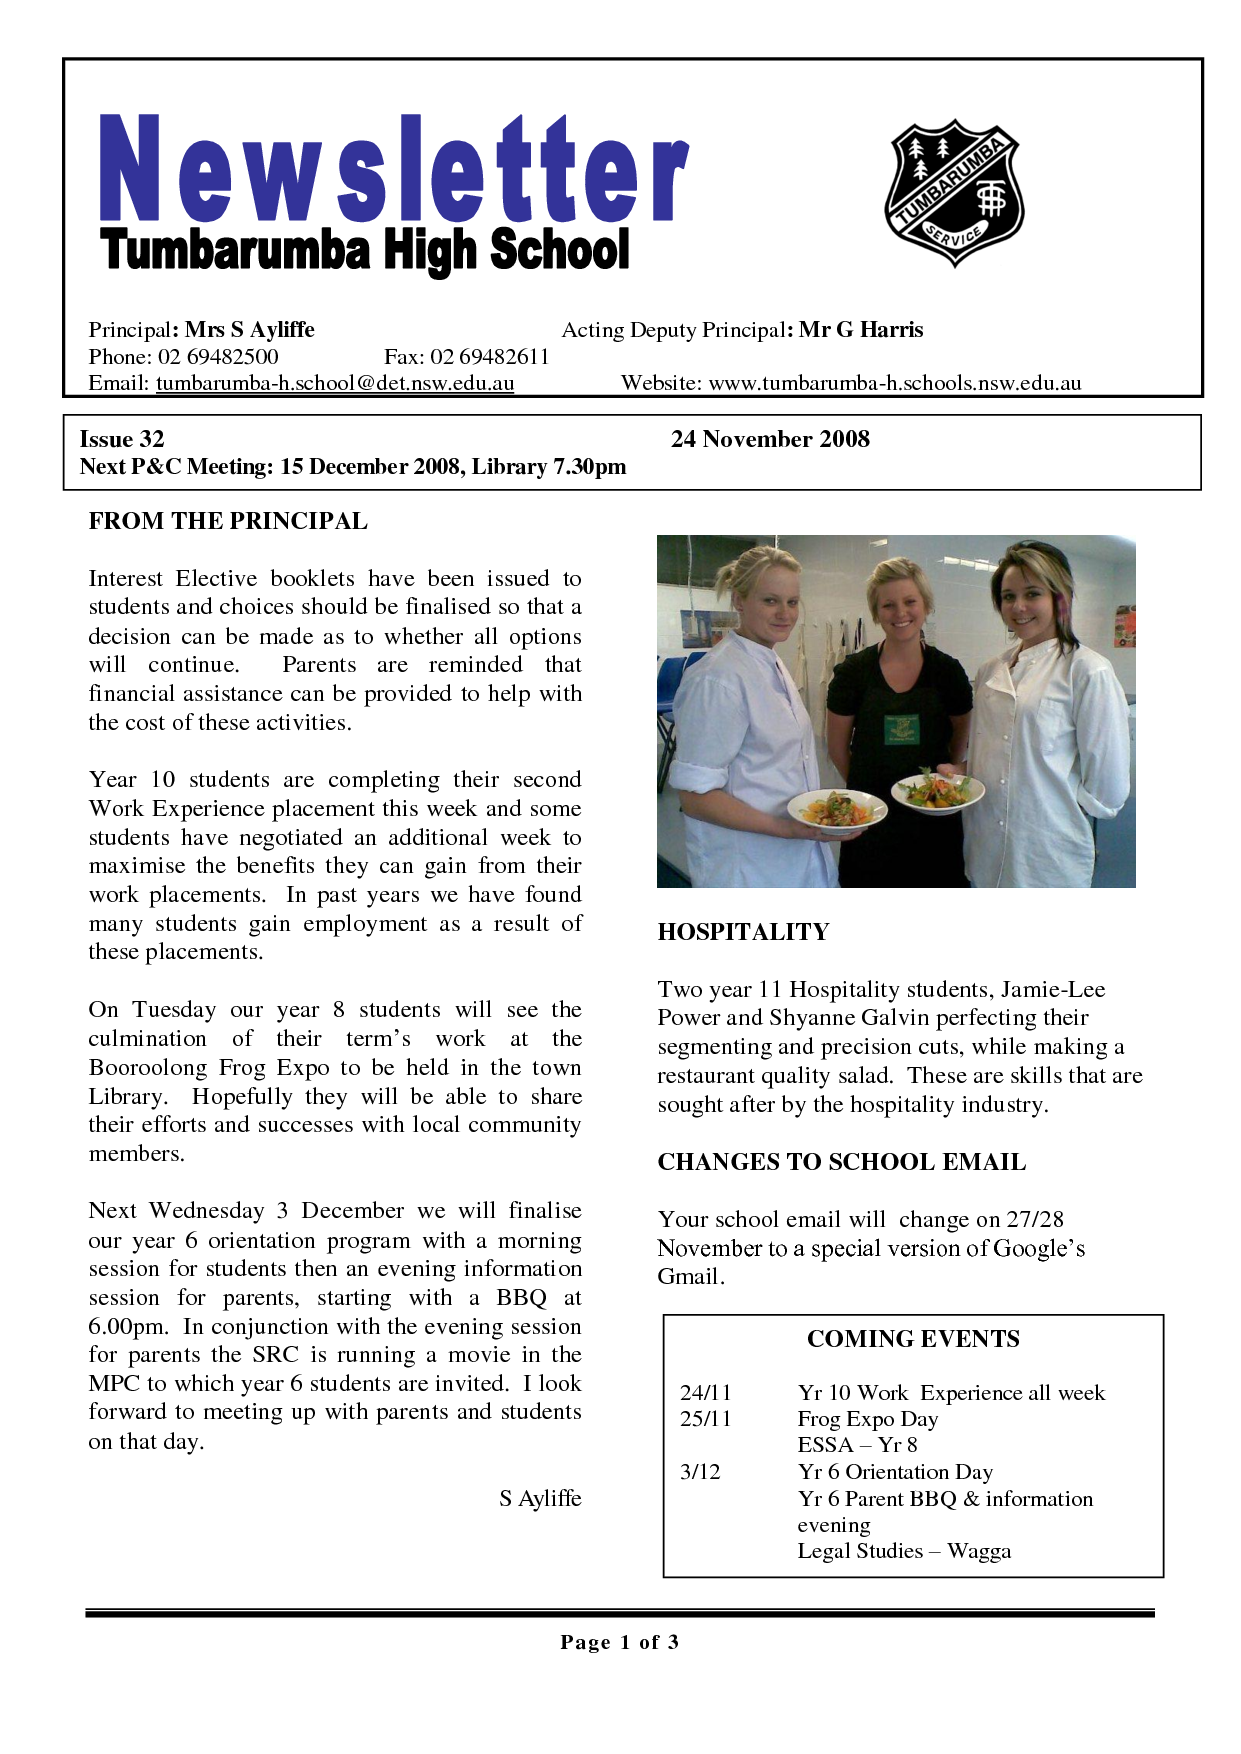 17 Awesome high school newsletter templates images | newsletter ...